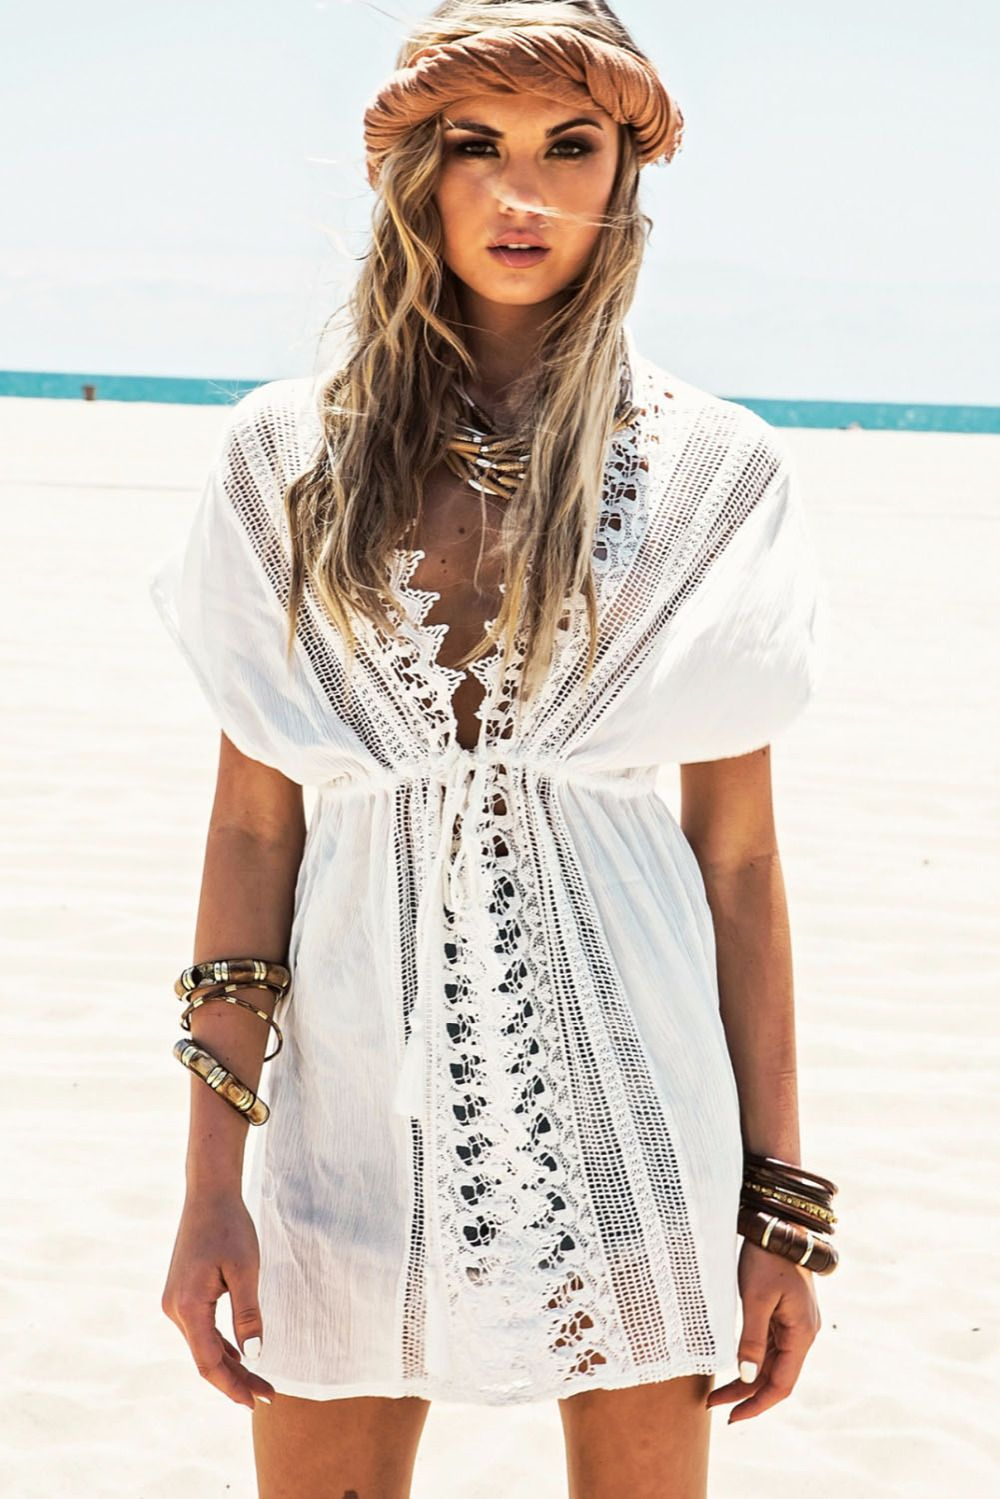 Beach cover ups 15 best outfits beach covers beach and clothes white short sleeve v neck cotton beach caftans lace crochet tunic beach cover ups sexy kaftan bikini swimsuit cover up dress bankloansurffo Images